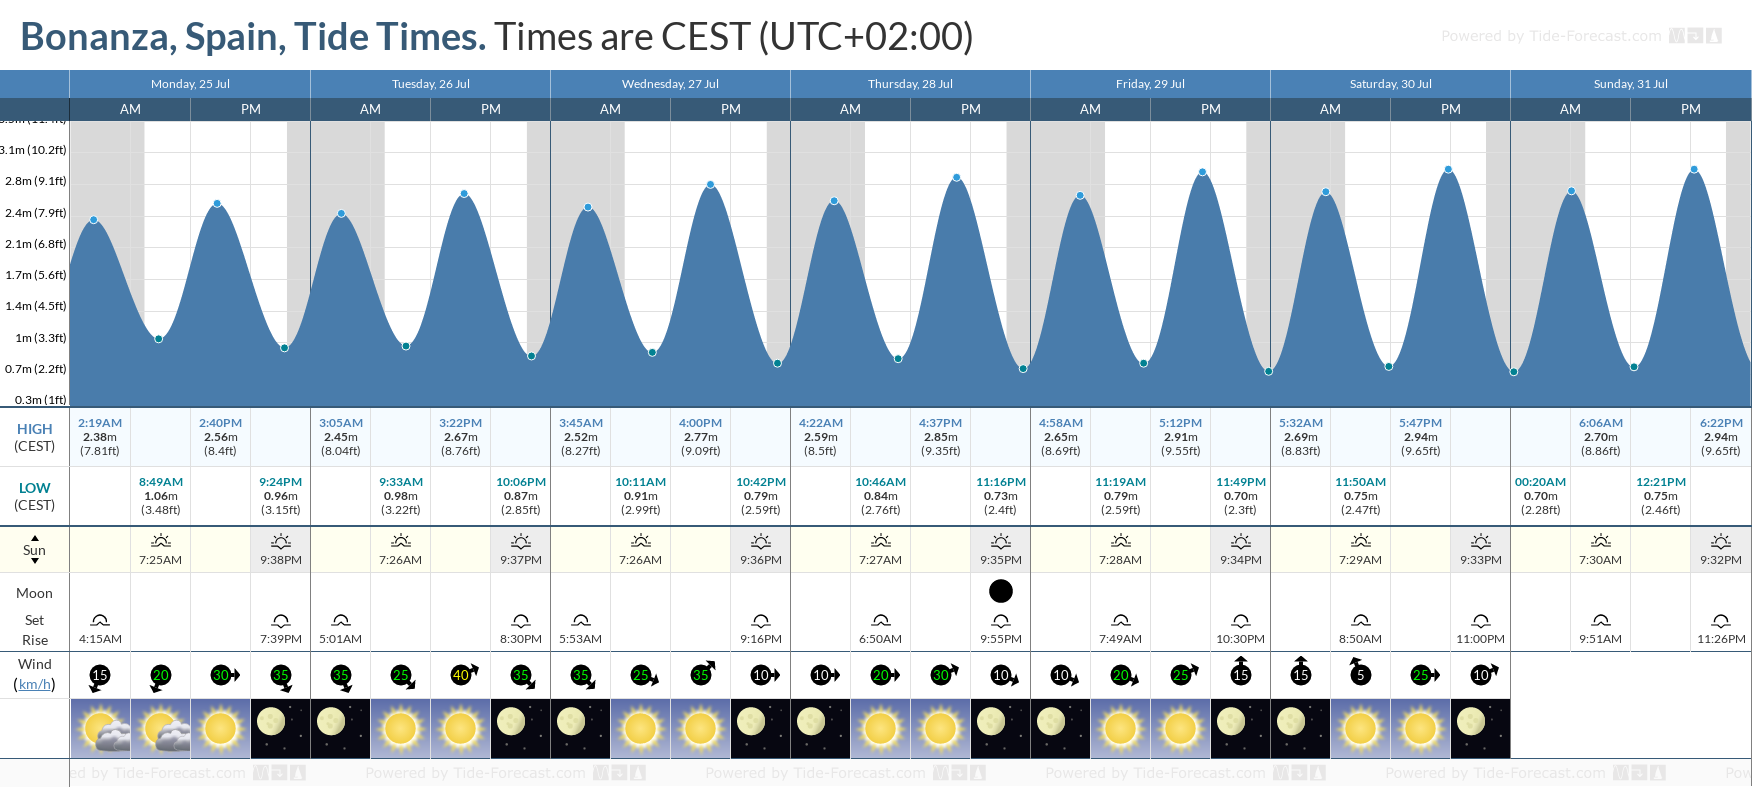 Bonanza, Spain Tide Chart including high and low tide tide times for the next 7 days